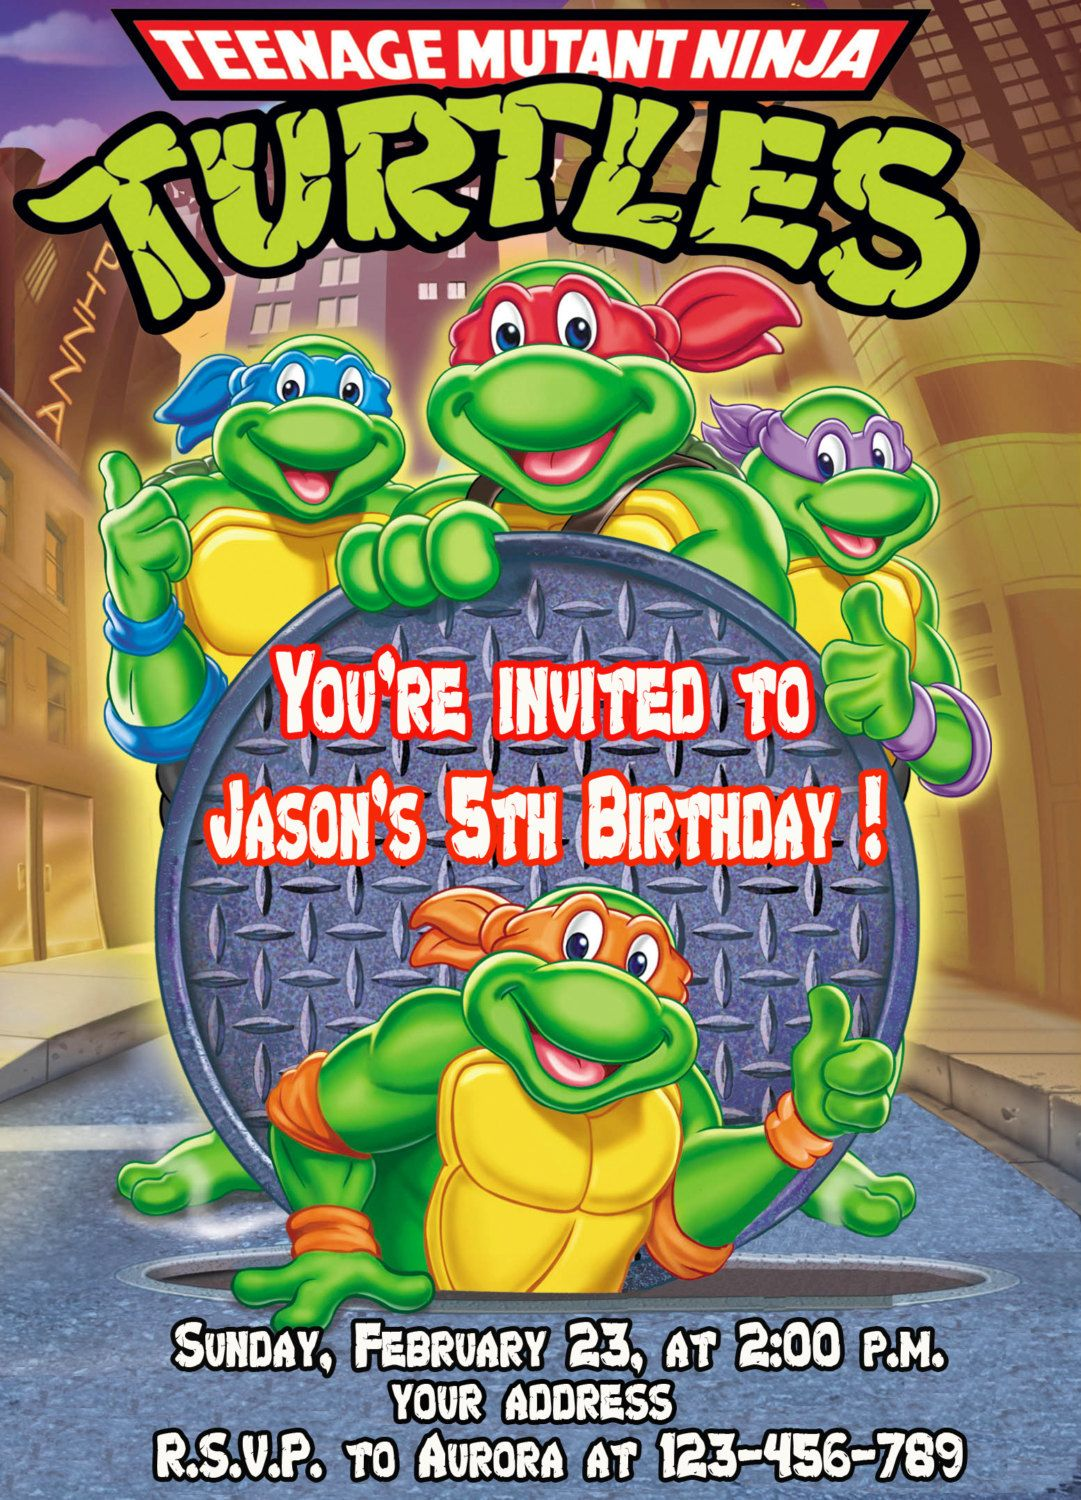 picture about Ninja Turtles Invitations Printable identified as Teenage Mutant Ninja Turtles birthday invitation Printable